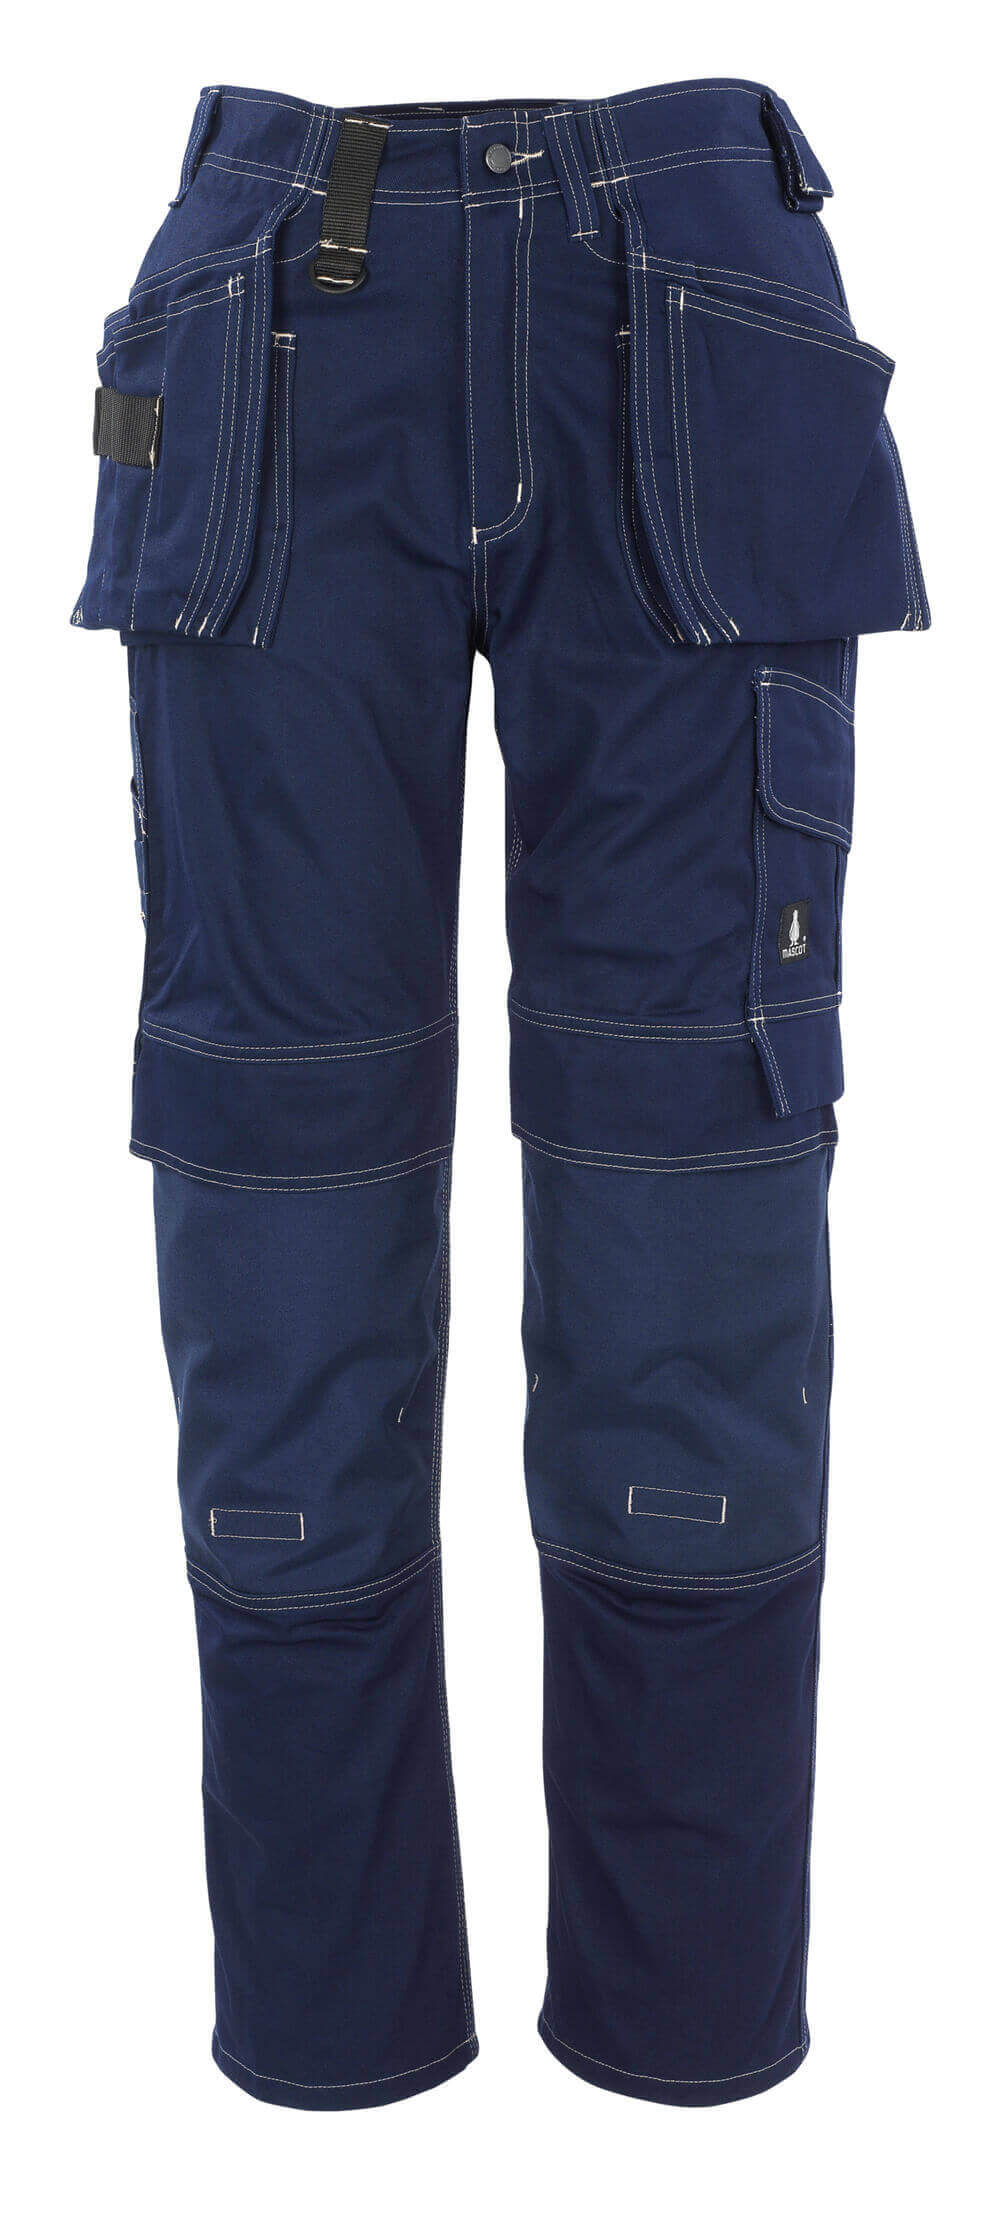 06131-630-01 Trousers with holster pockets - navy